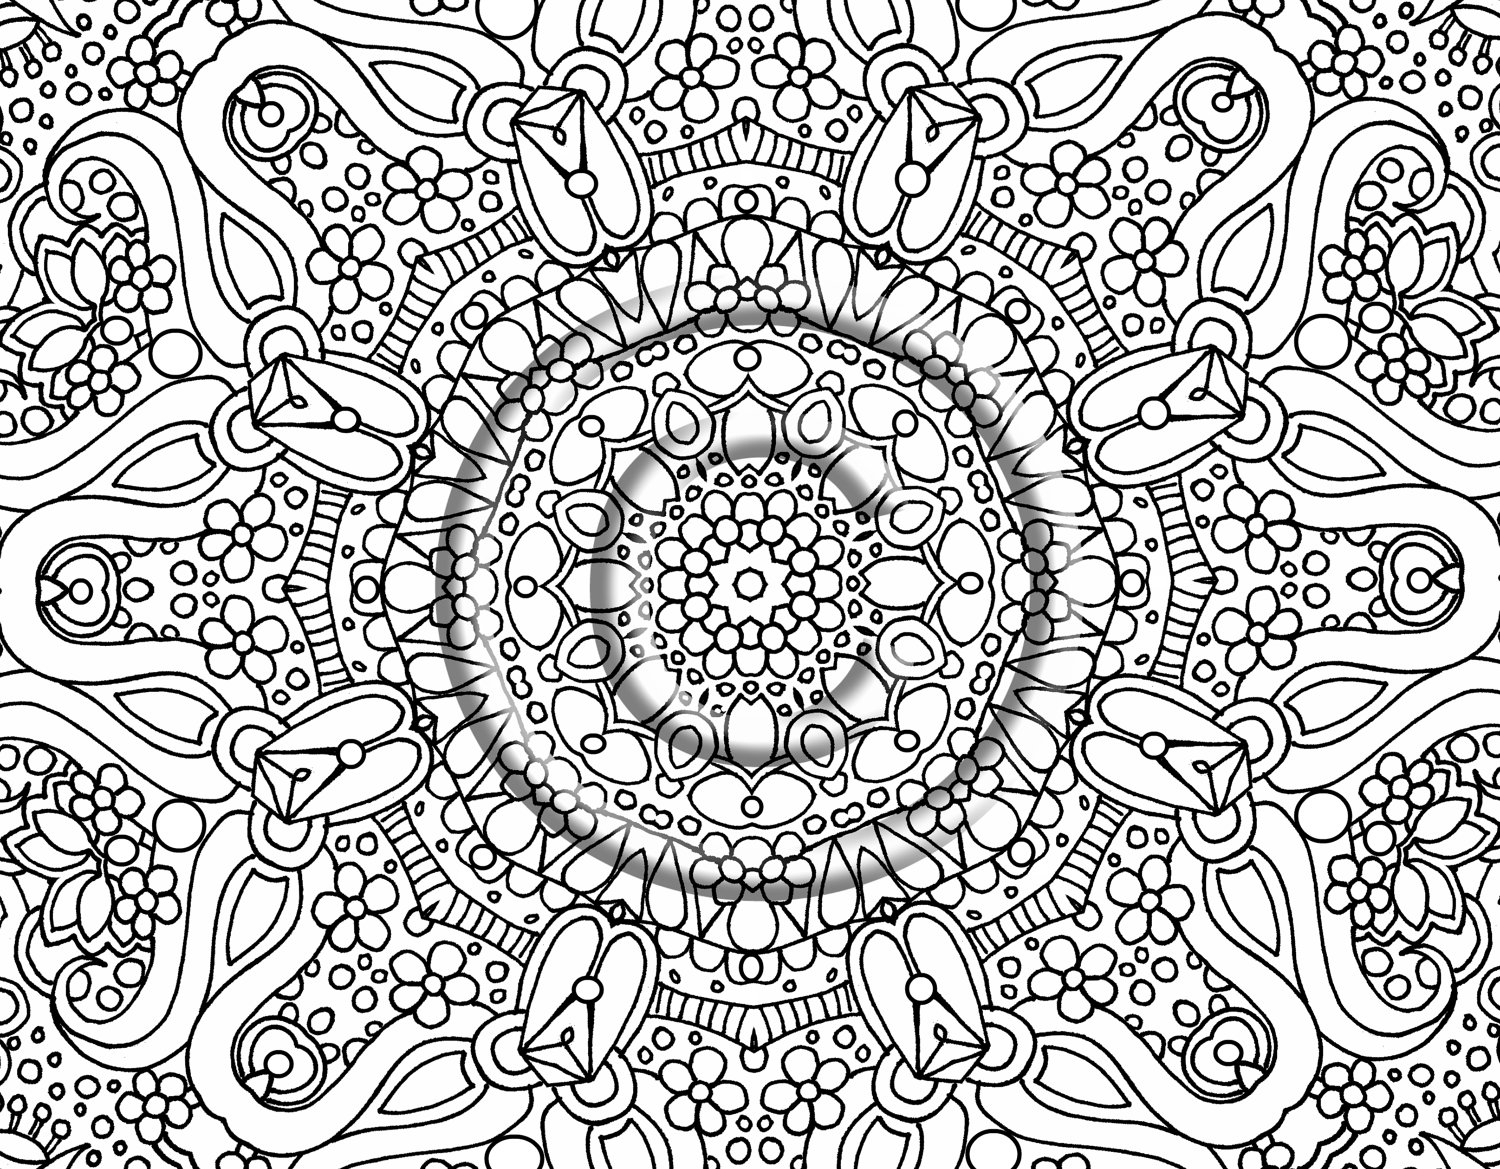 challenging coloring pages difficult coloring pages for adults to download and print coloring pages challenging 1 1